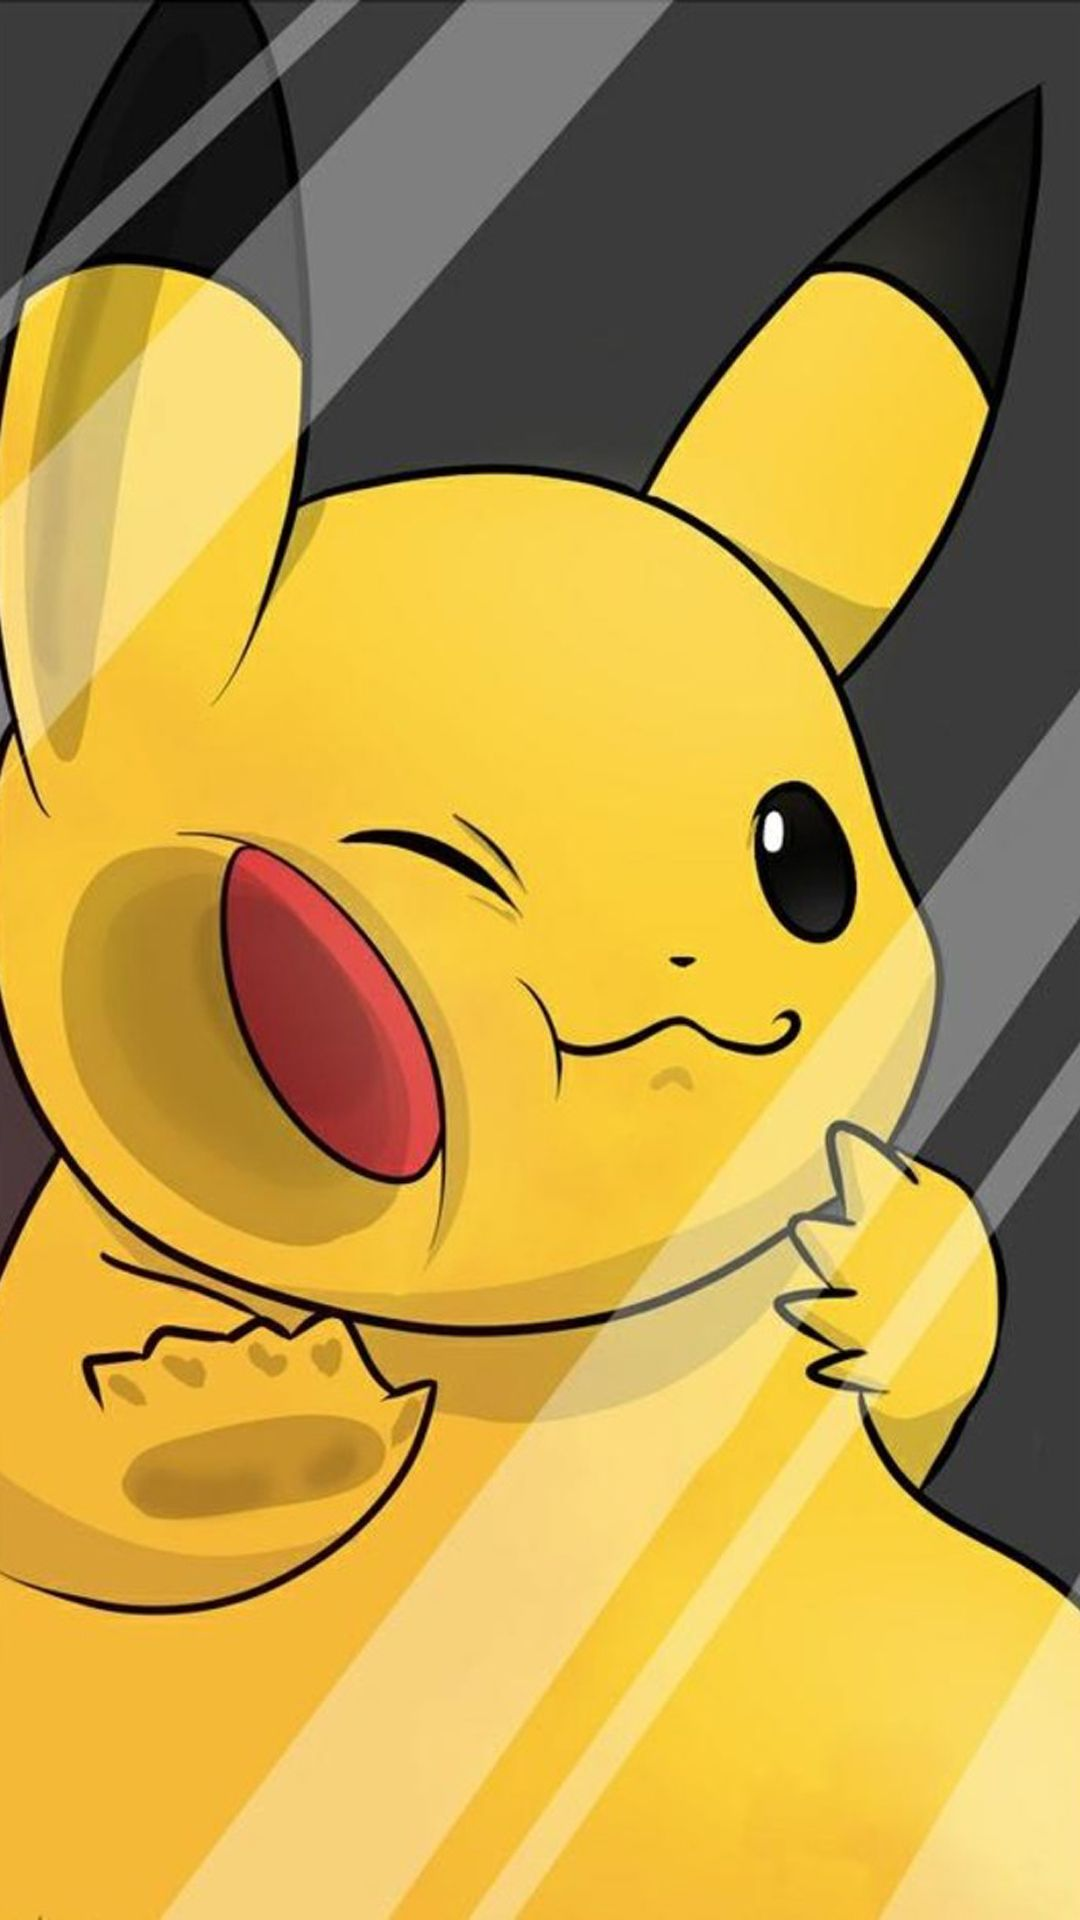 Pikachu Hd Wallpapers For Iphone 7 Wallpapers Pictures Seni Jalanan 3d Lock Screen Anime Seni